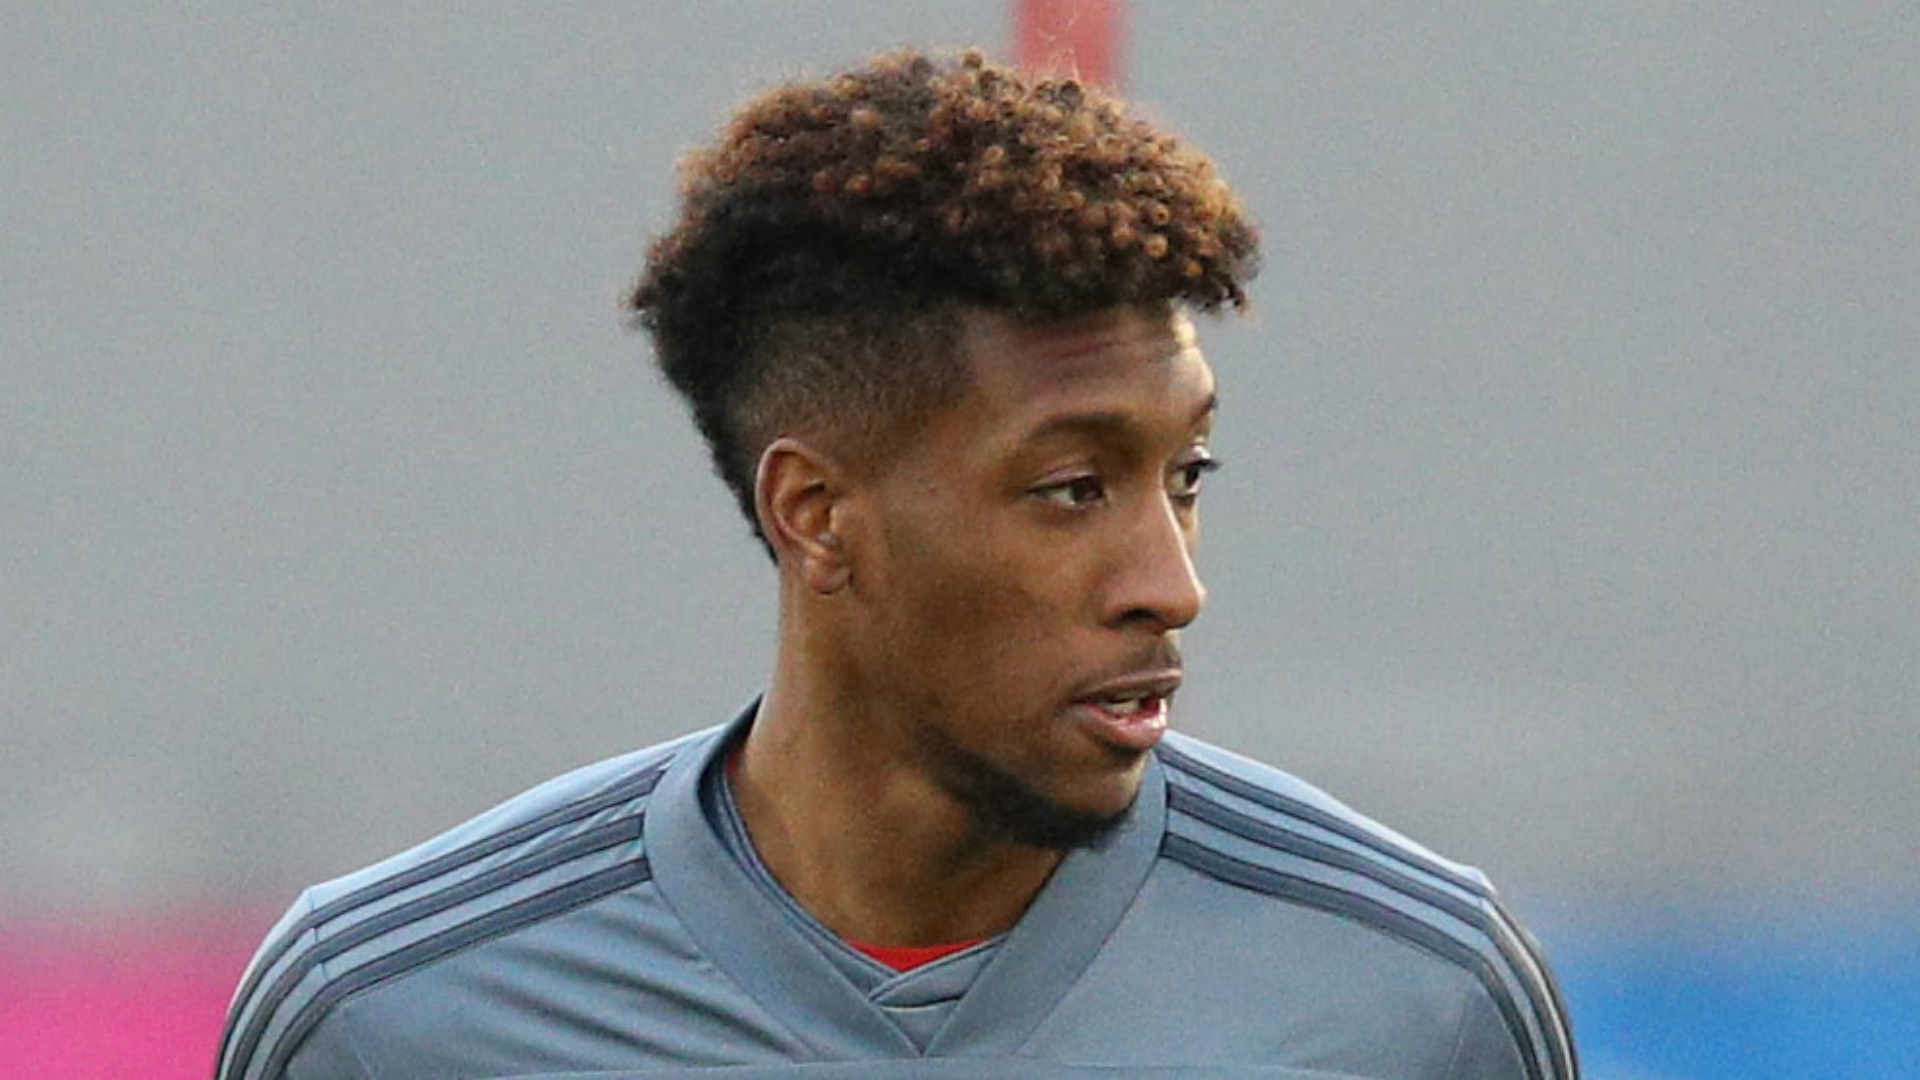 Kingsley Coman has struggled with injuries at Bayern Munich lately and he looks set to miss out again as France face Iceland on Monday.